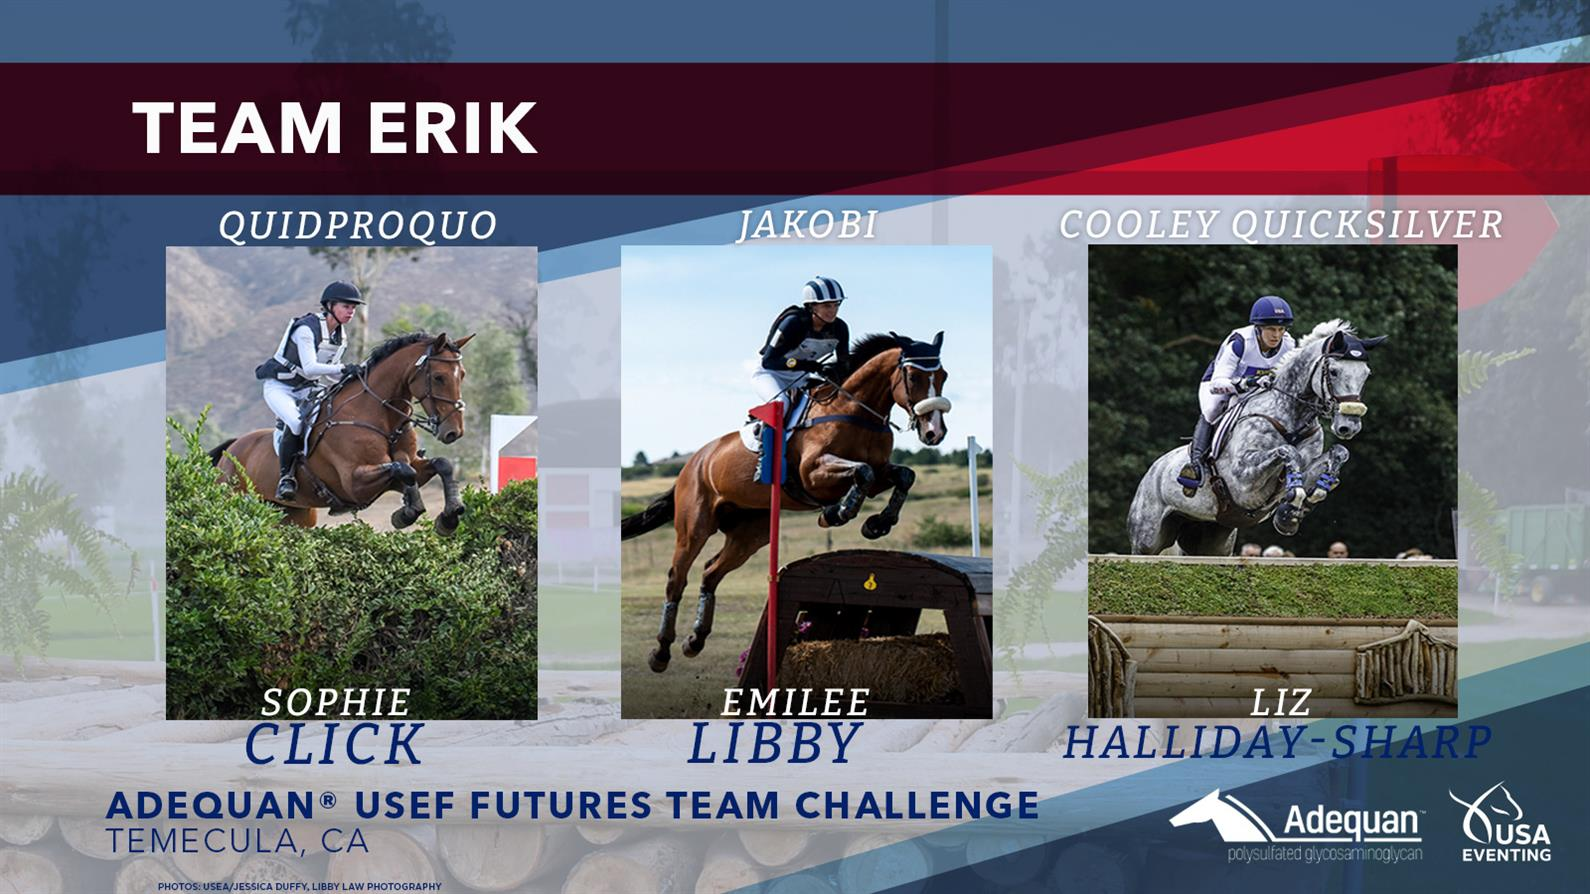 Erik Duvander's team for the USEF Futures Team Challenge West Coast